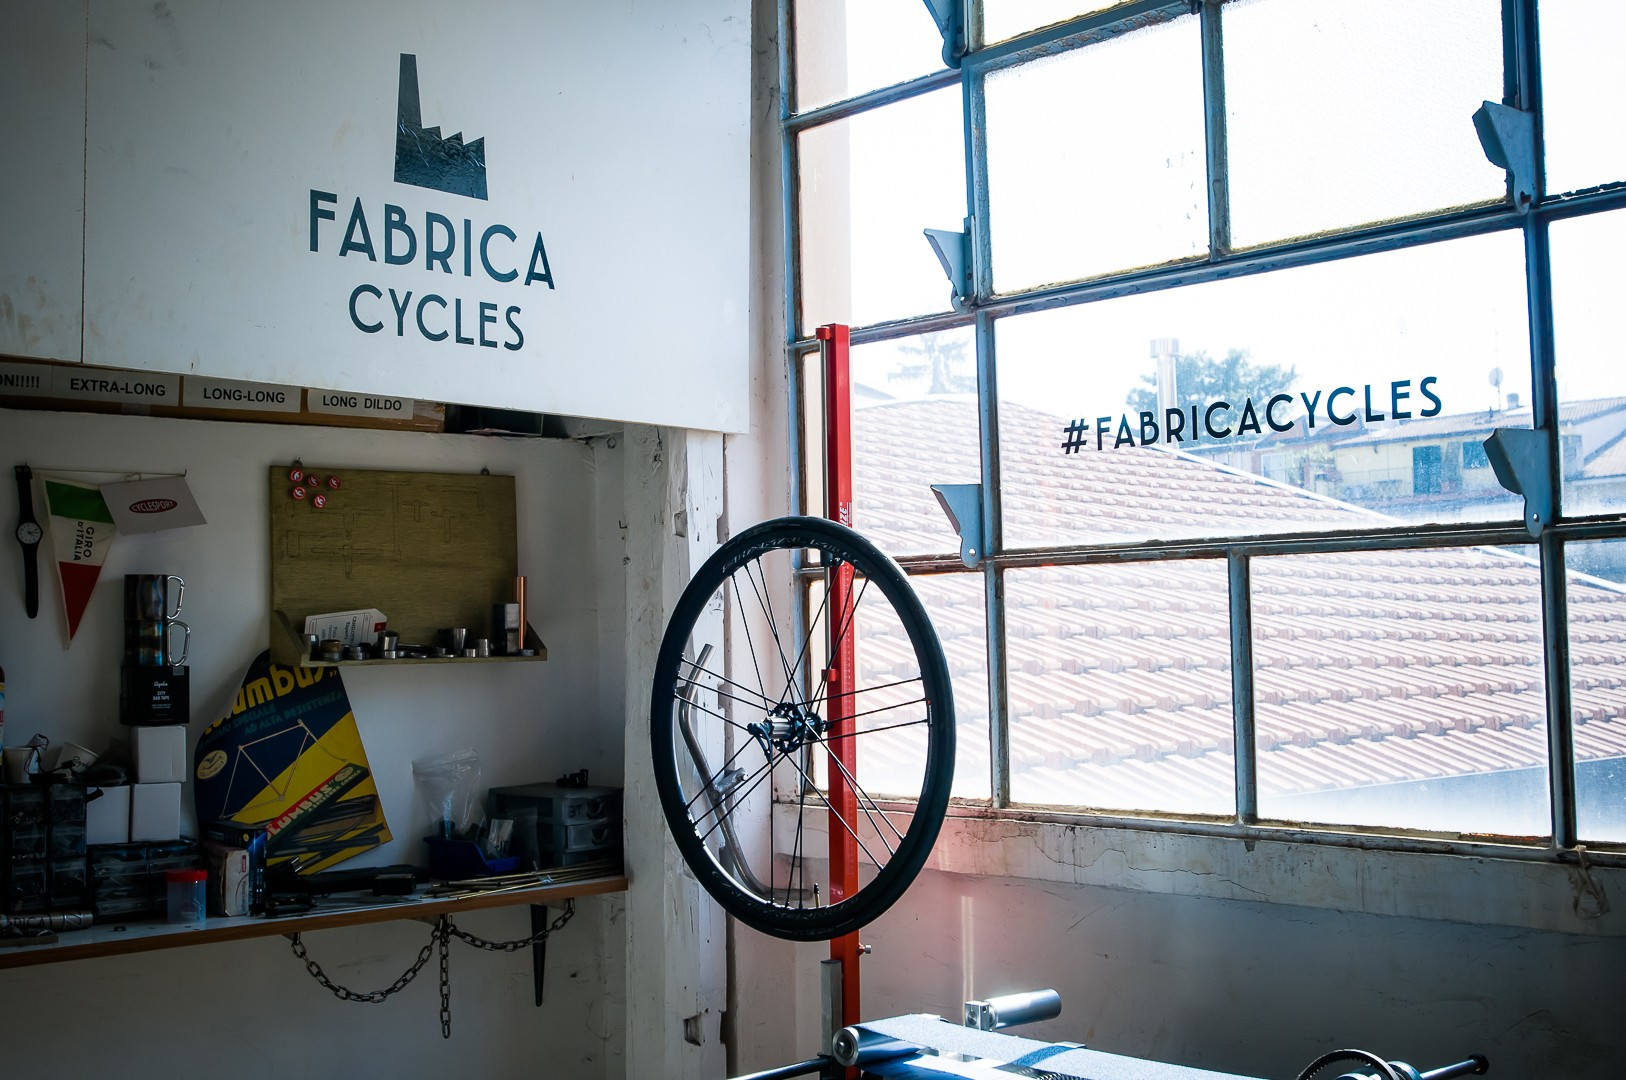 Fabrica Cycles - Milano